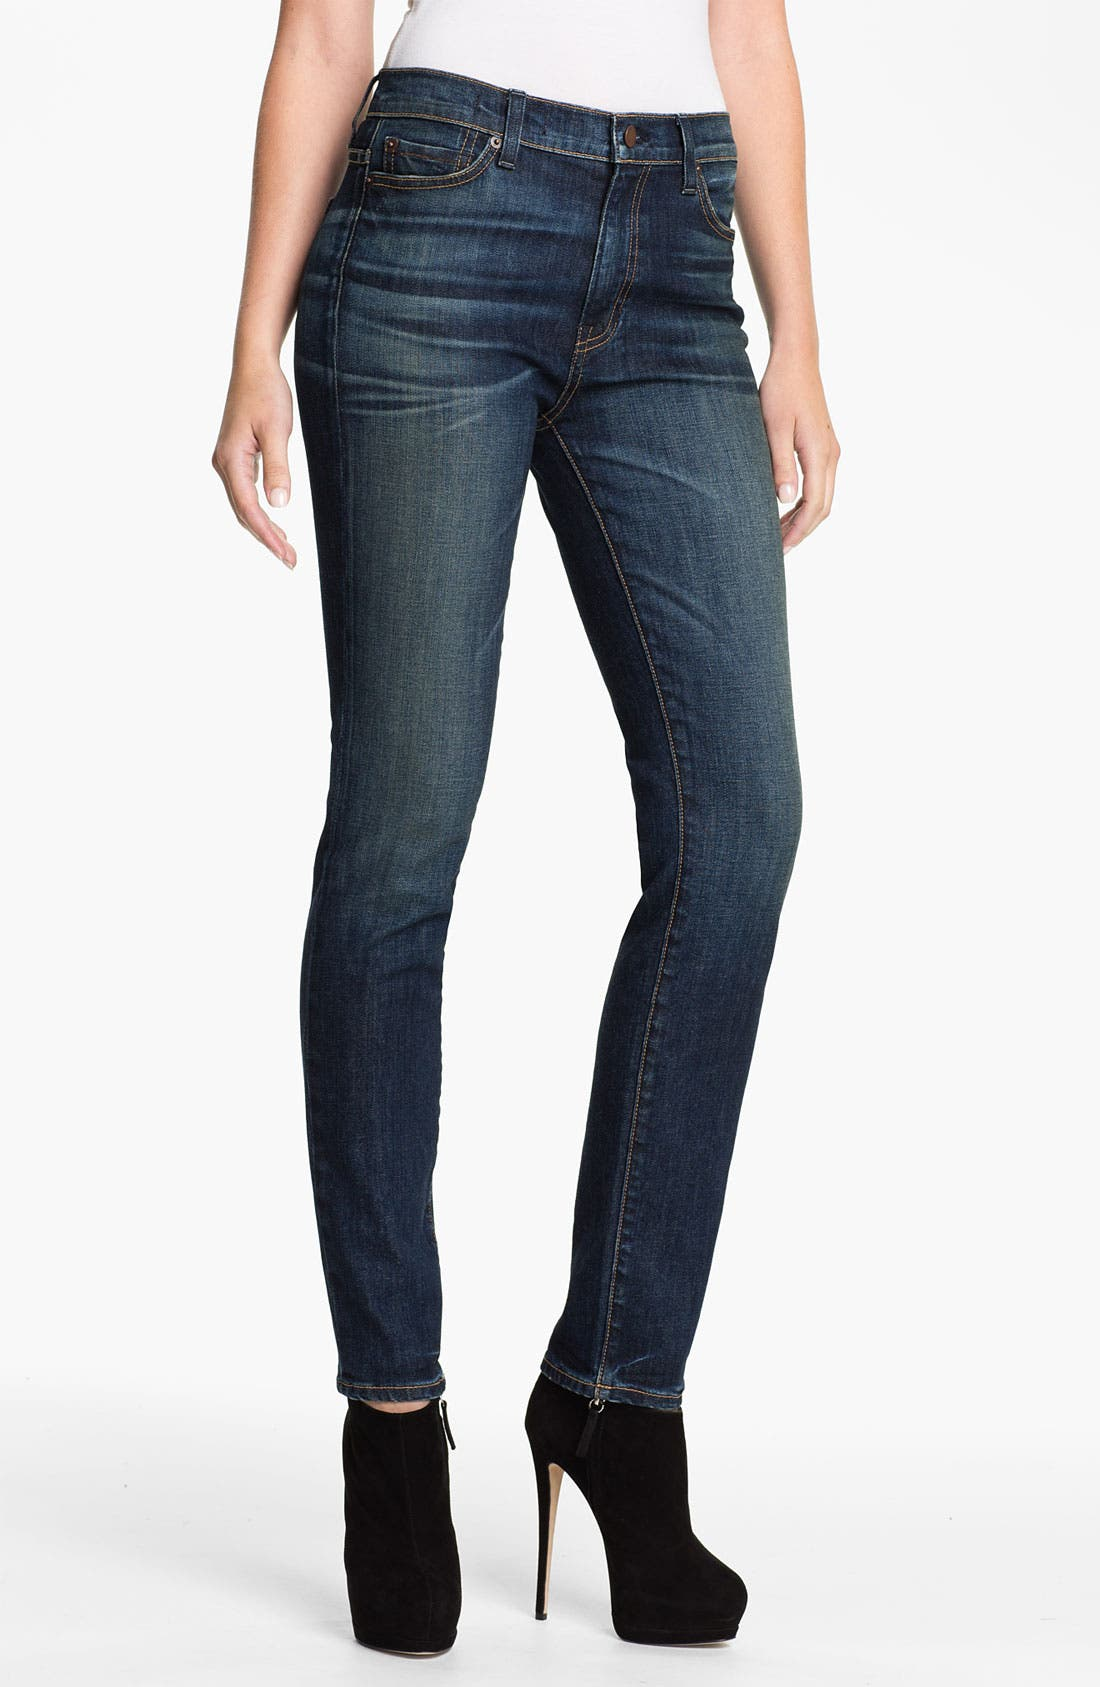 Alternate Image 1 Selected - TEXTILE Elizabeth and James 'Cyndi' High Rise Skinny Jeans